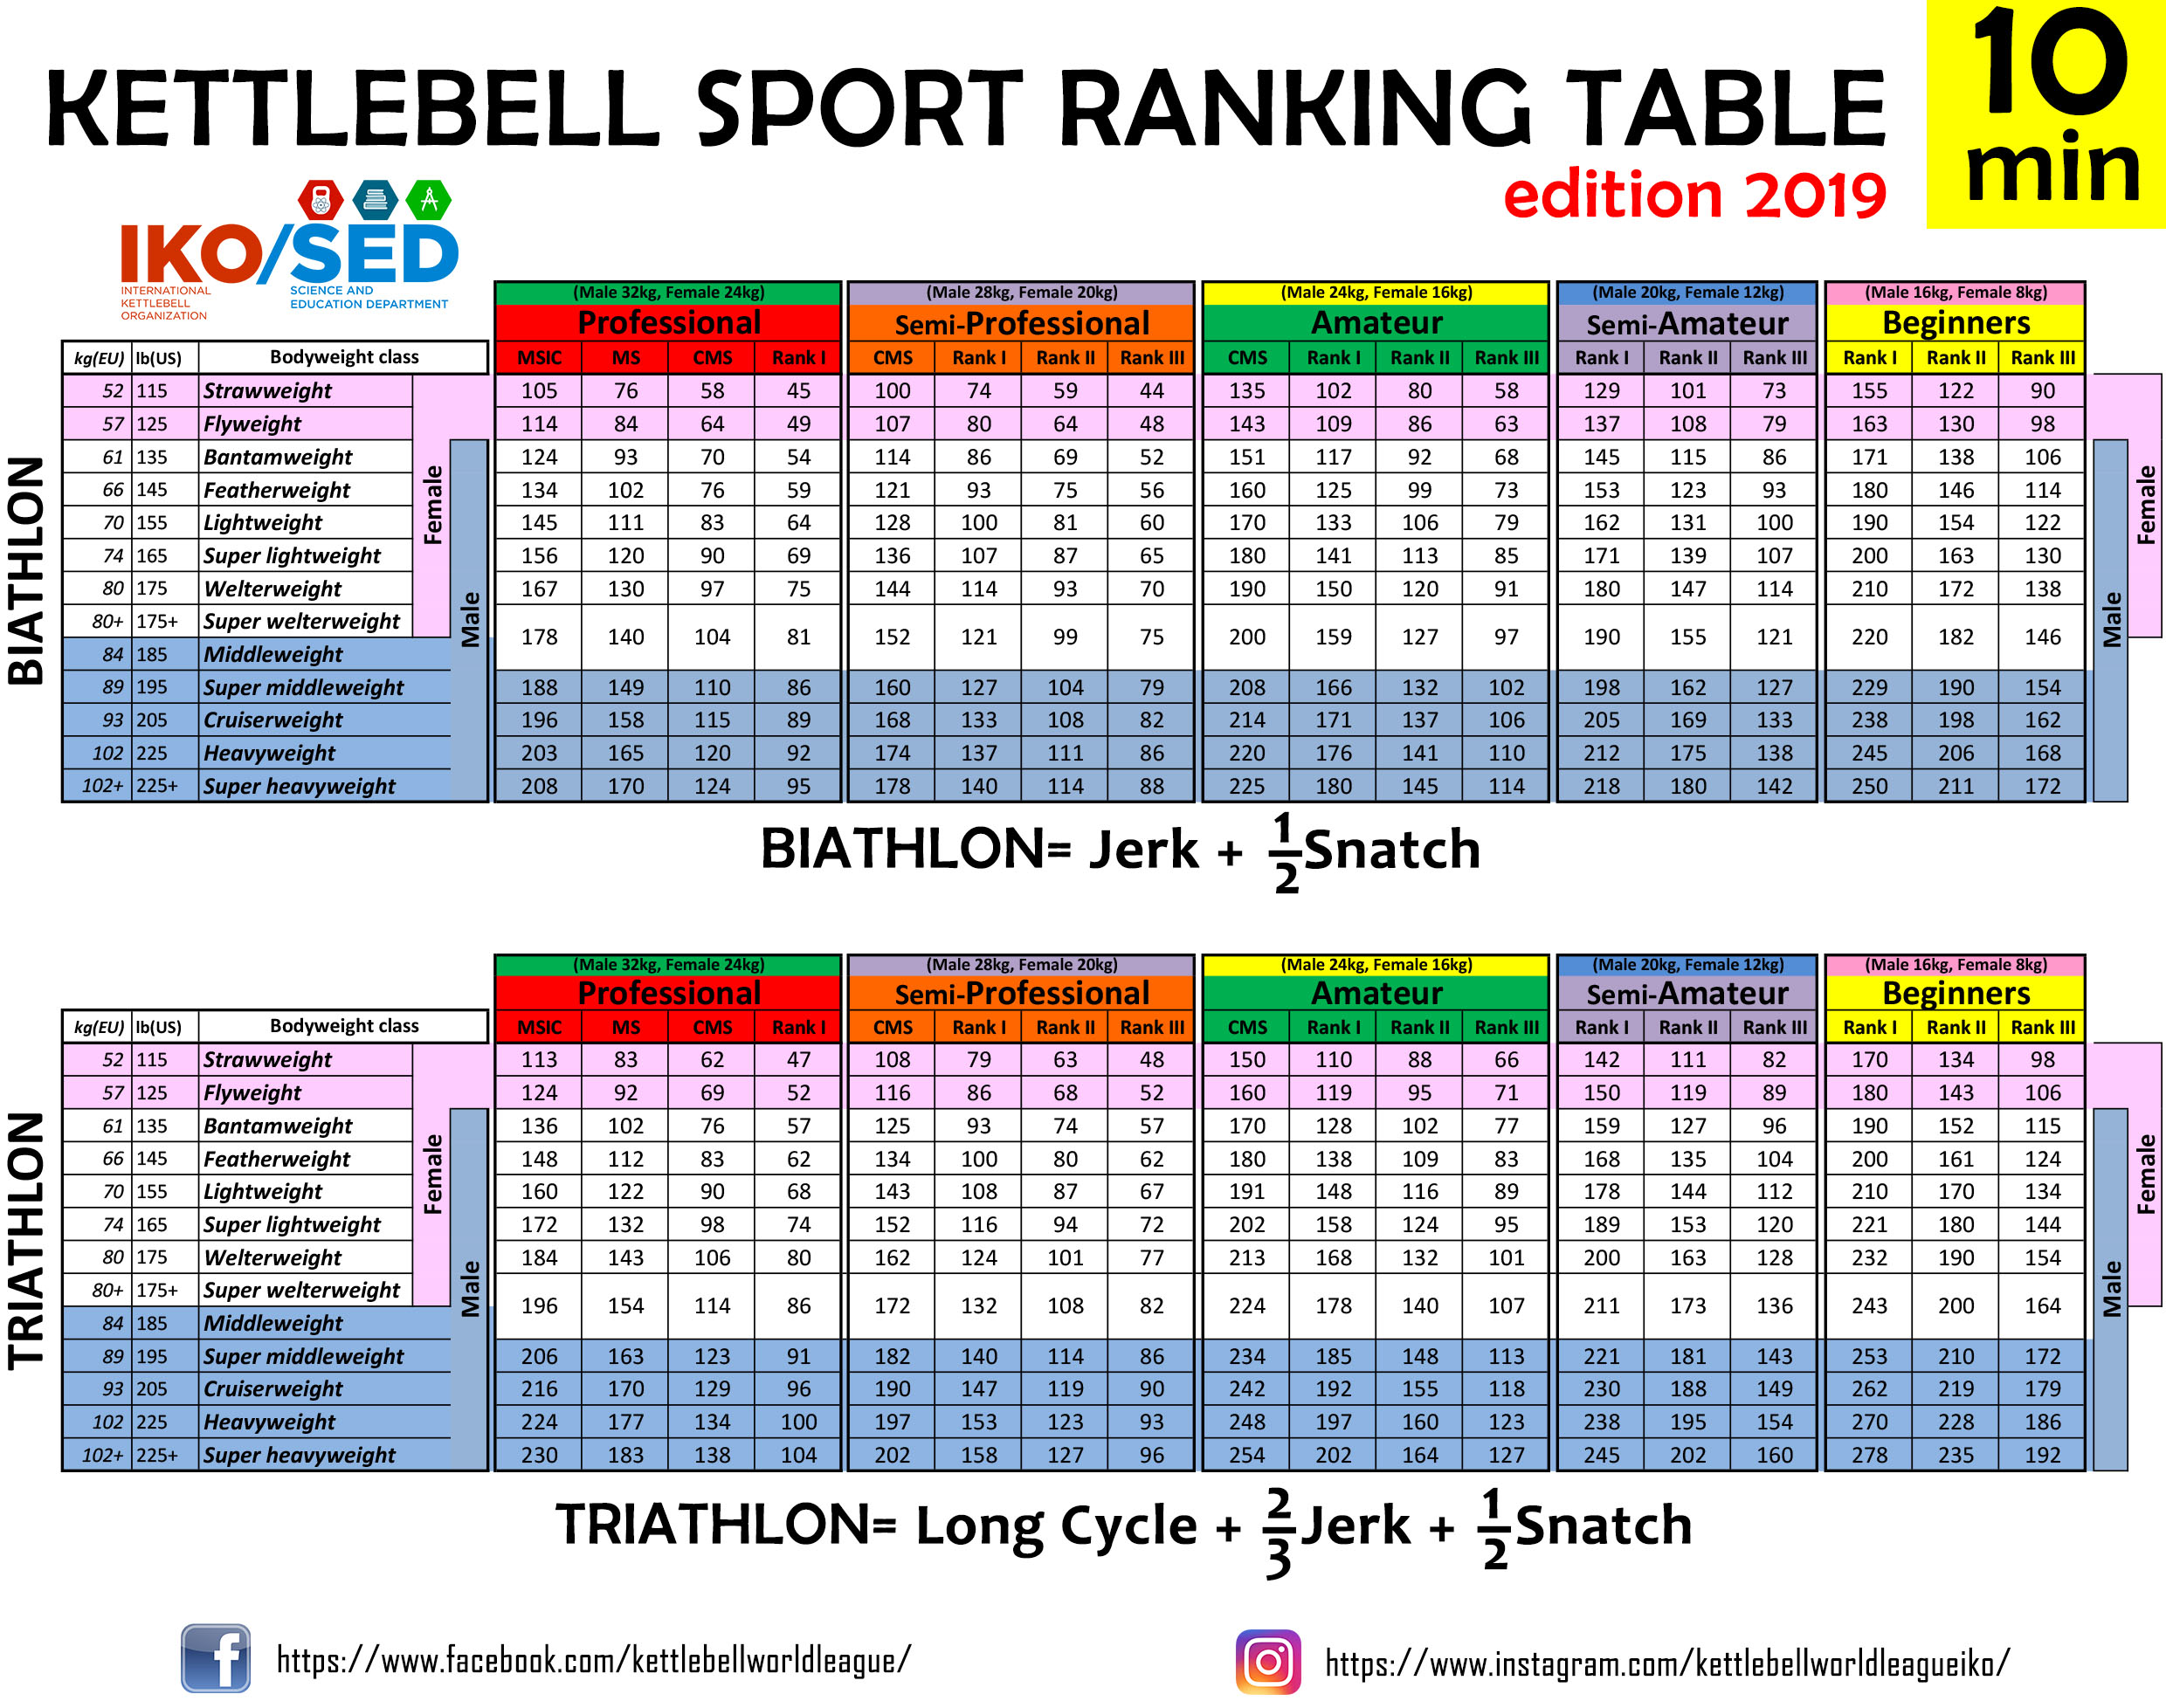 IKO Ranking table 2019 MAIN BT_TRI.jpg